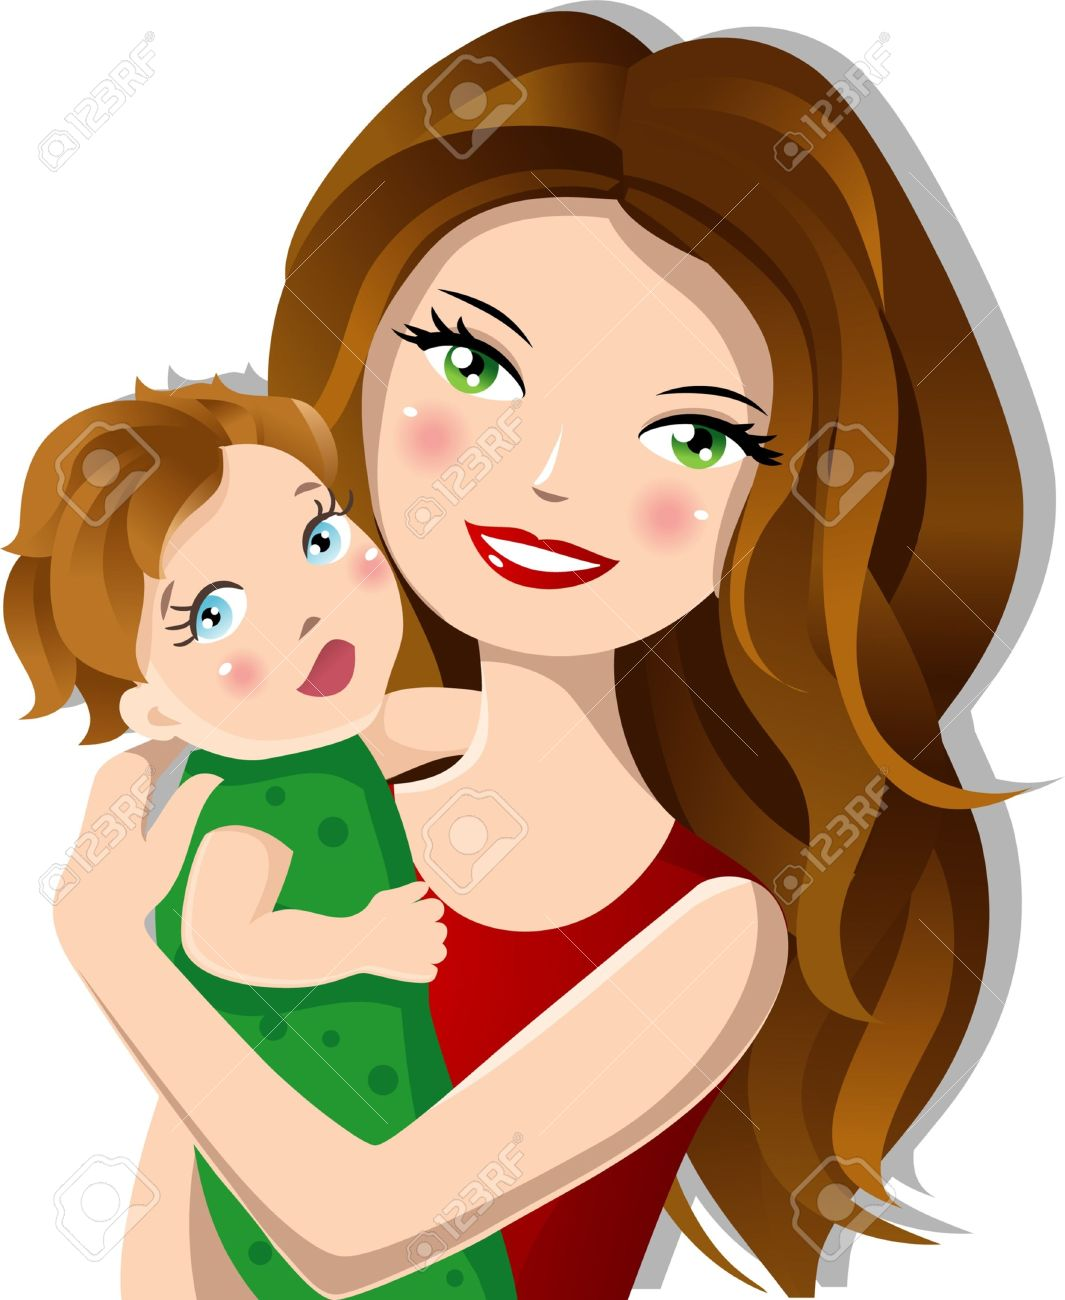 Clipart picture of mother vector royalty free stock Mother Clipart clip art | Clipart Panda - Free Clipart Images vector royalty free stock